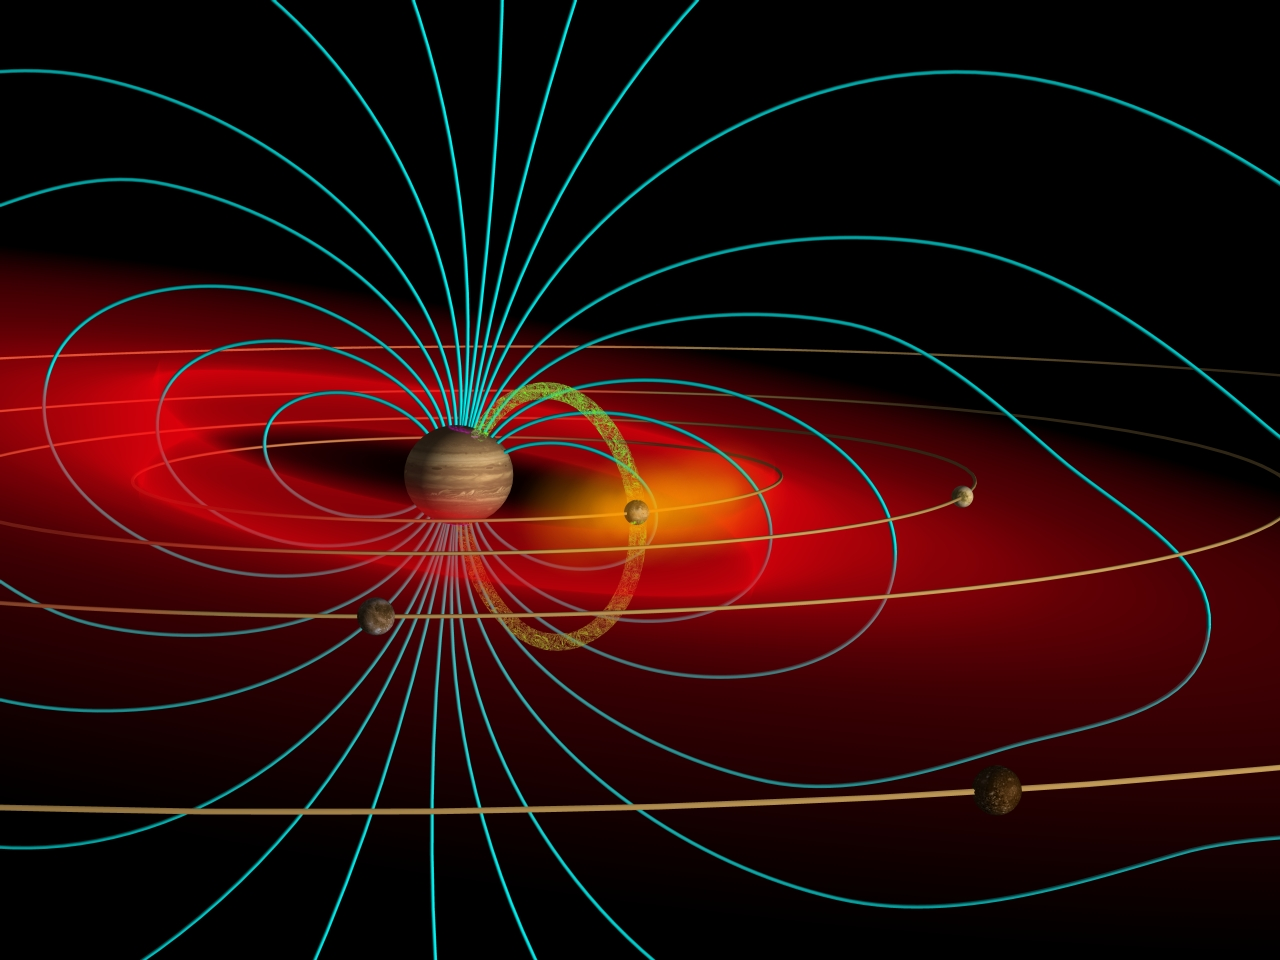 Sunspots May be Due to Magnetic Flux Tubes Between Sol and the Planets